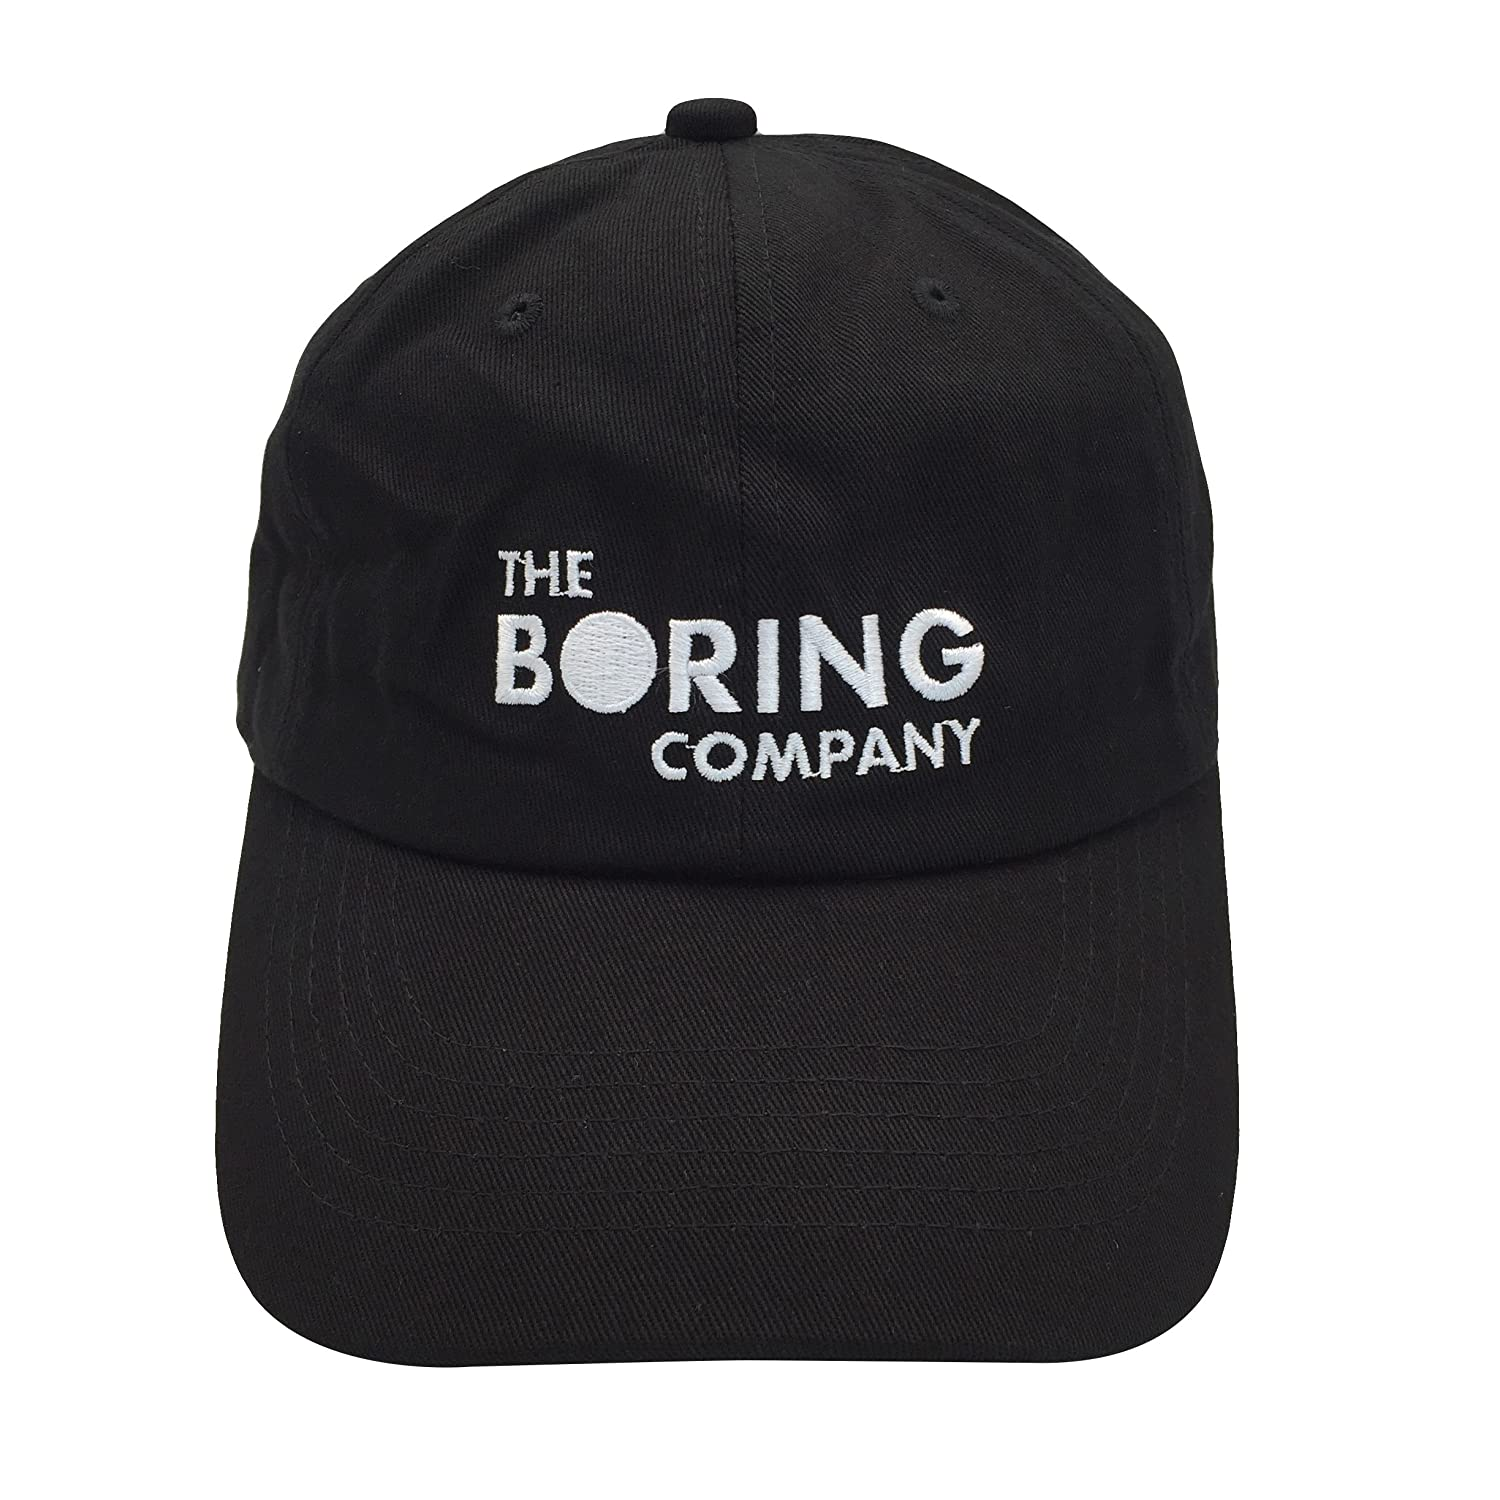 7827ffa4c8e Amazon.com  binbin lin The Boring Company Cap Spacex Hat Dad Hat Baseball  Cap Mens Dad Hat for Men Black  Clothing